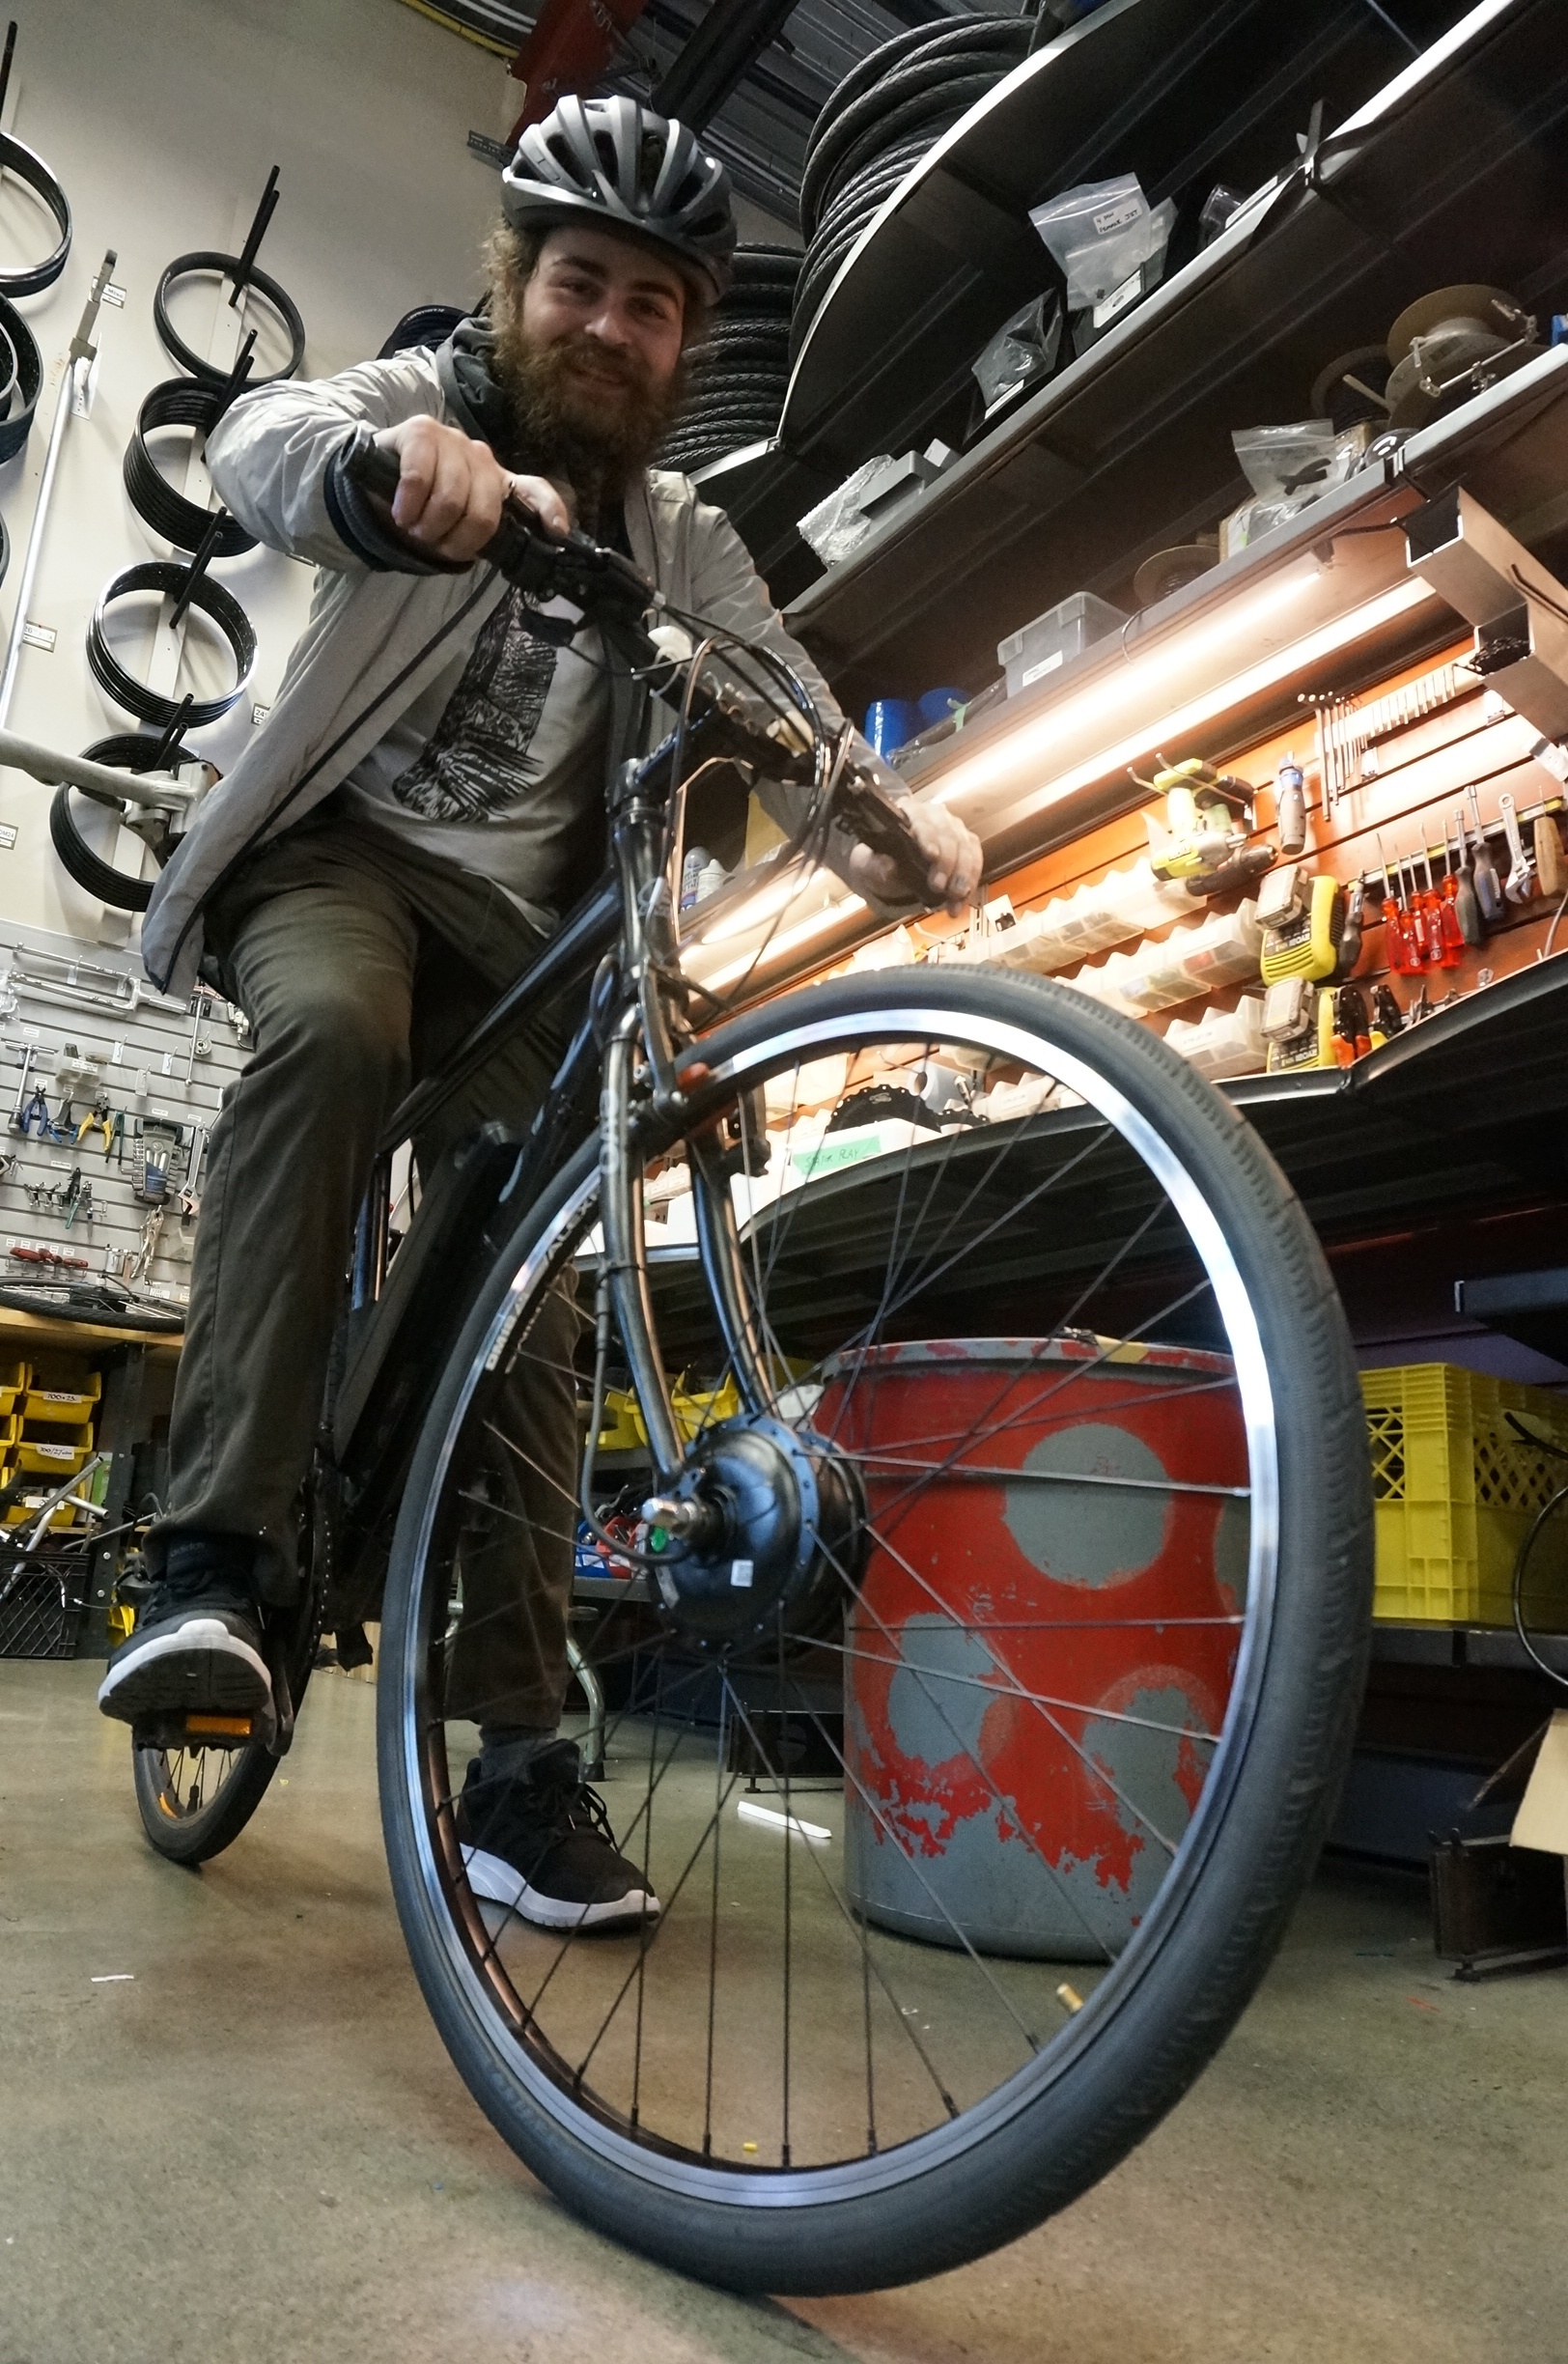 Convert Any Bike To Electric With An Easy Front Wheel Motor Kit | Make: